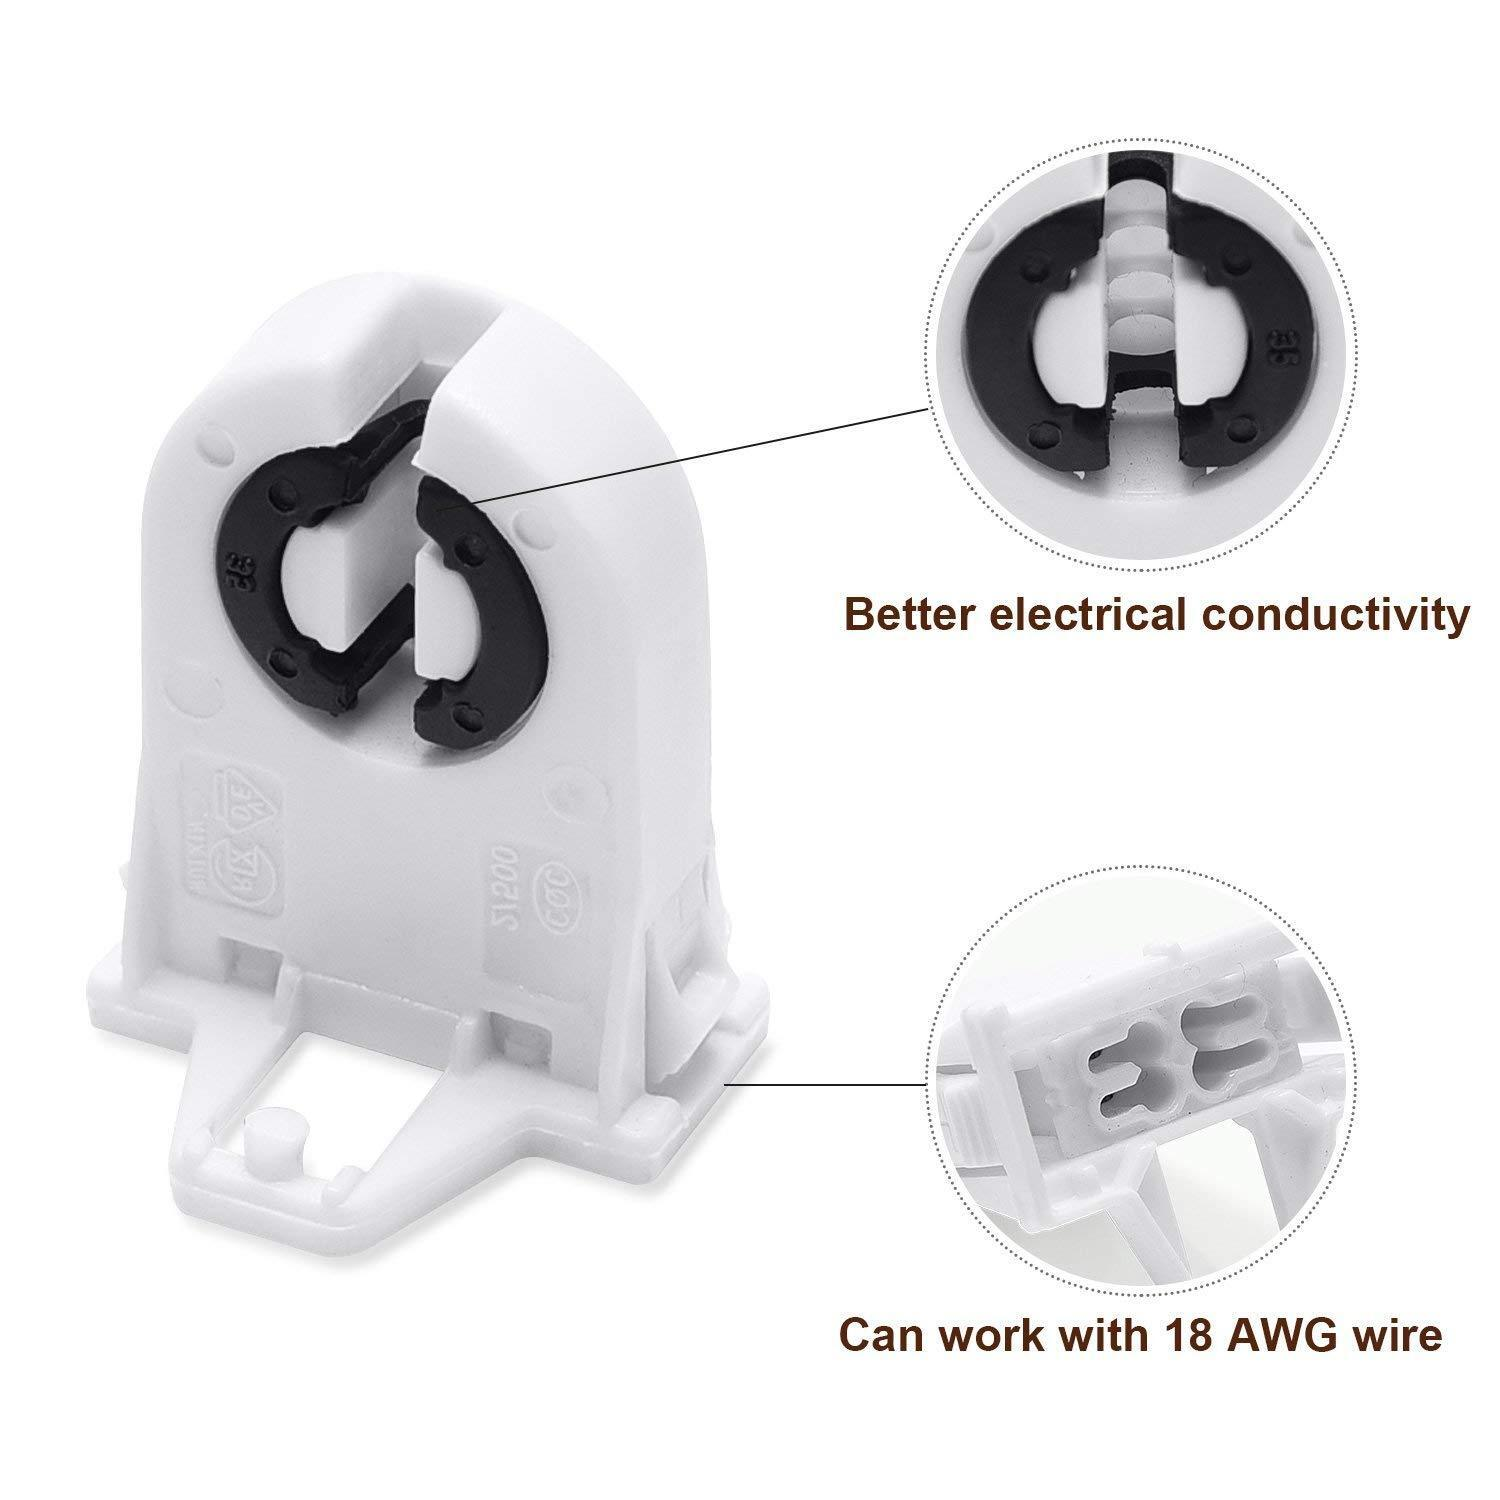 fluorescent light holder tvs fiero wiring diagram tombstone socket fitting lamp base t8 t12 details about led tube